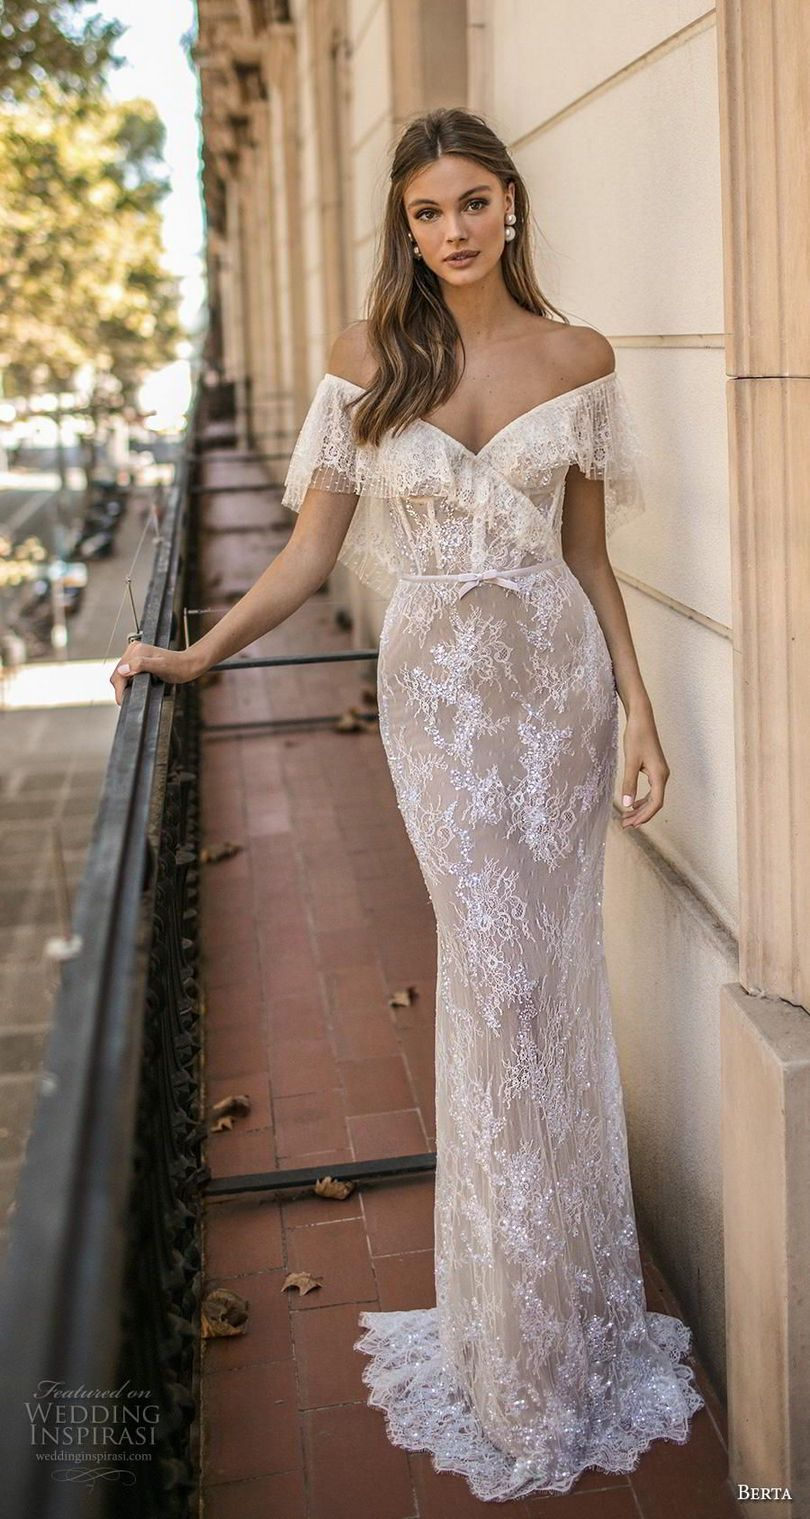 Top beautiful boho wedding dress you must see fantasy wedding